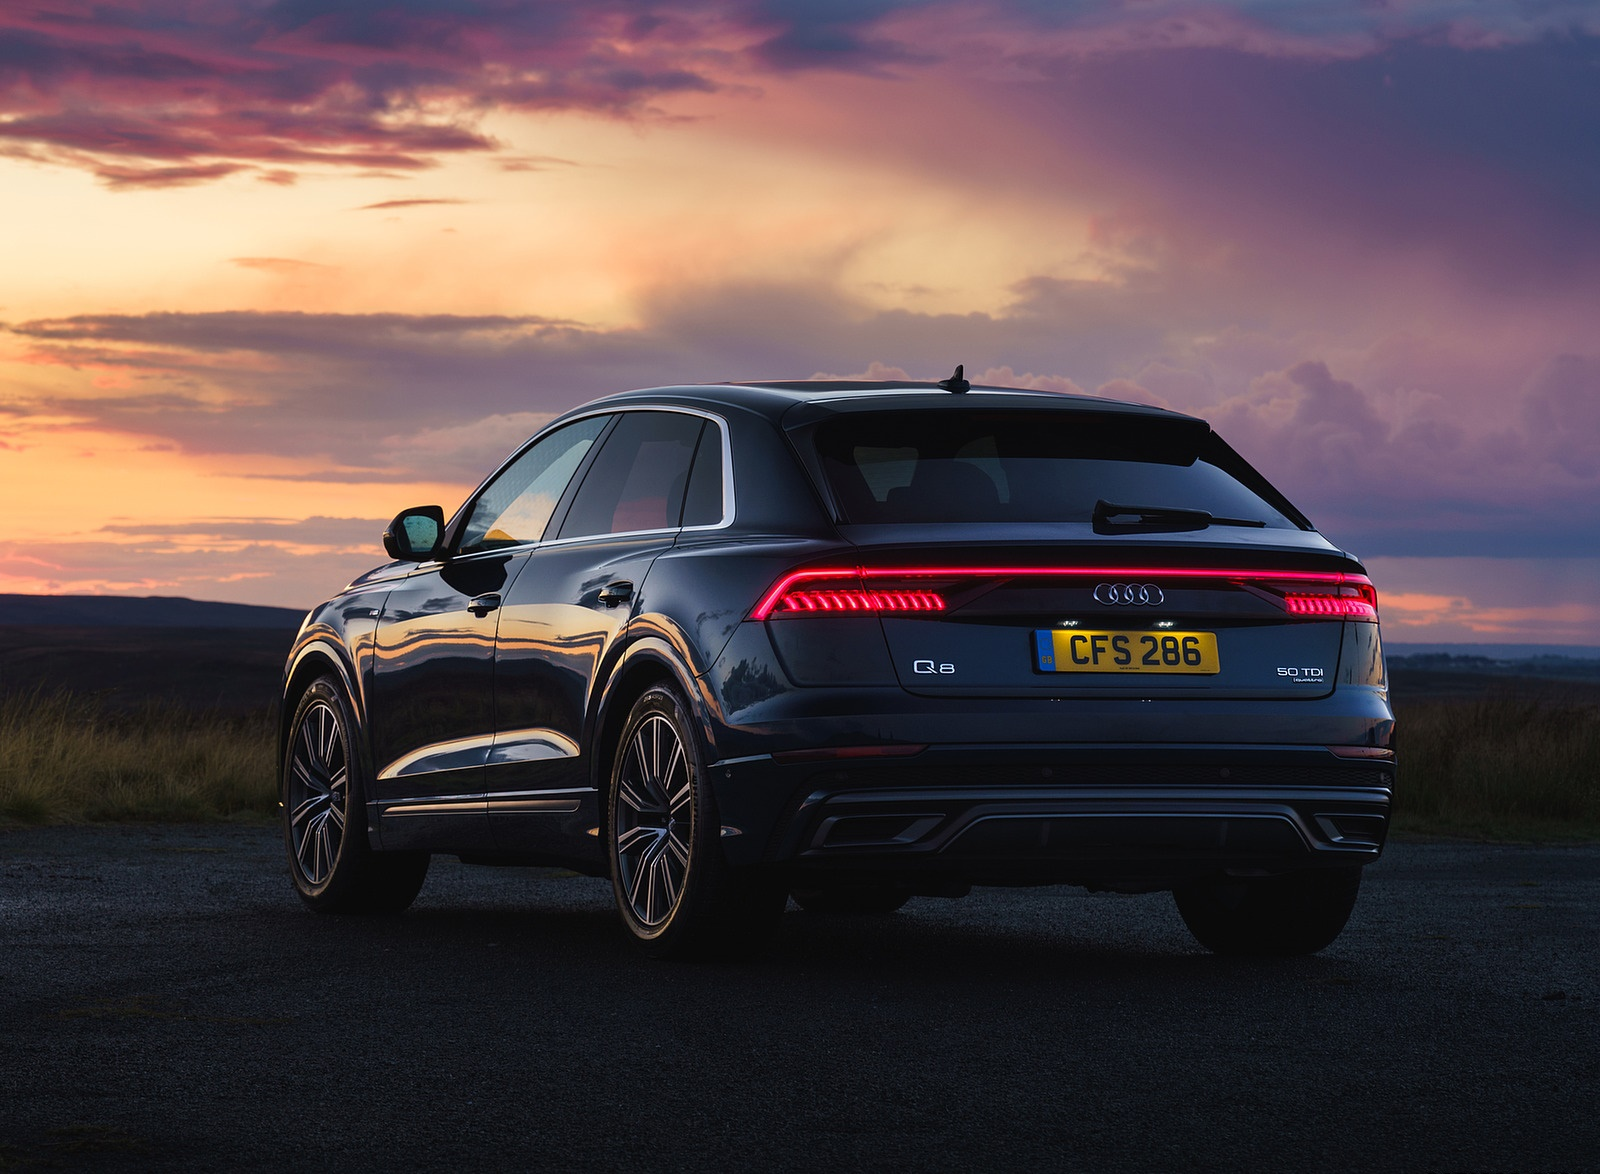 2019 Audi Q8 S Line 50 TDI Quattro (UK-Spec) Rear Three-Quarter Wallpaper (14)